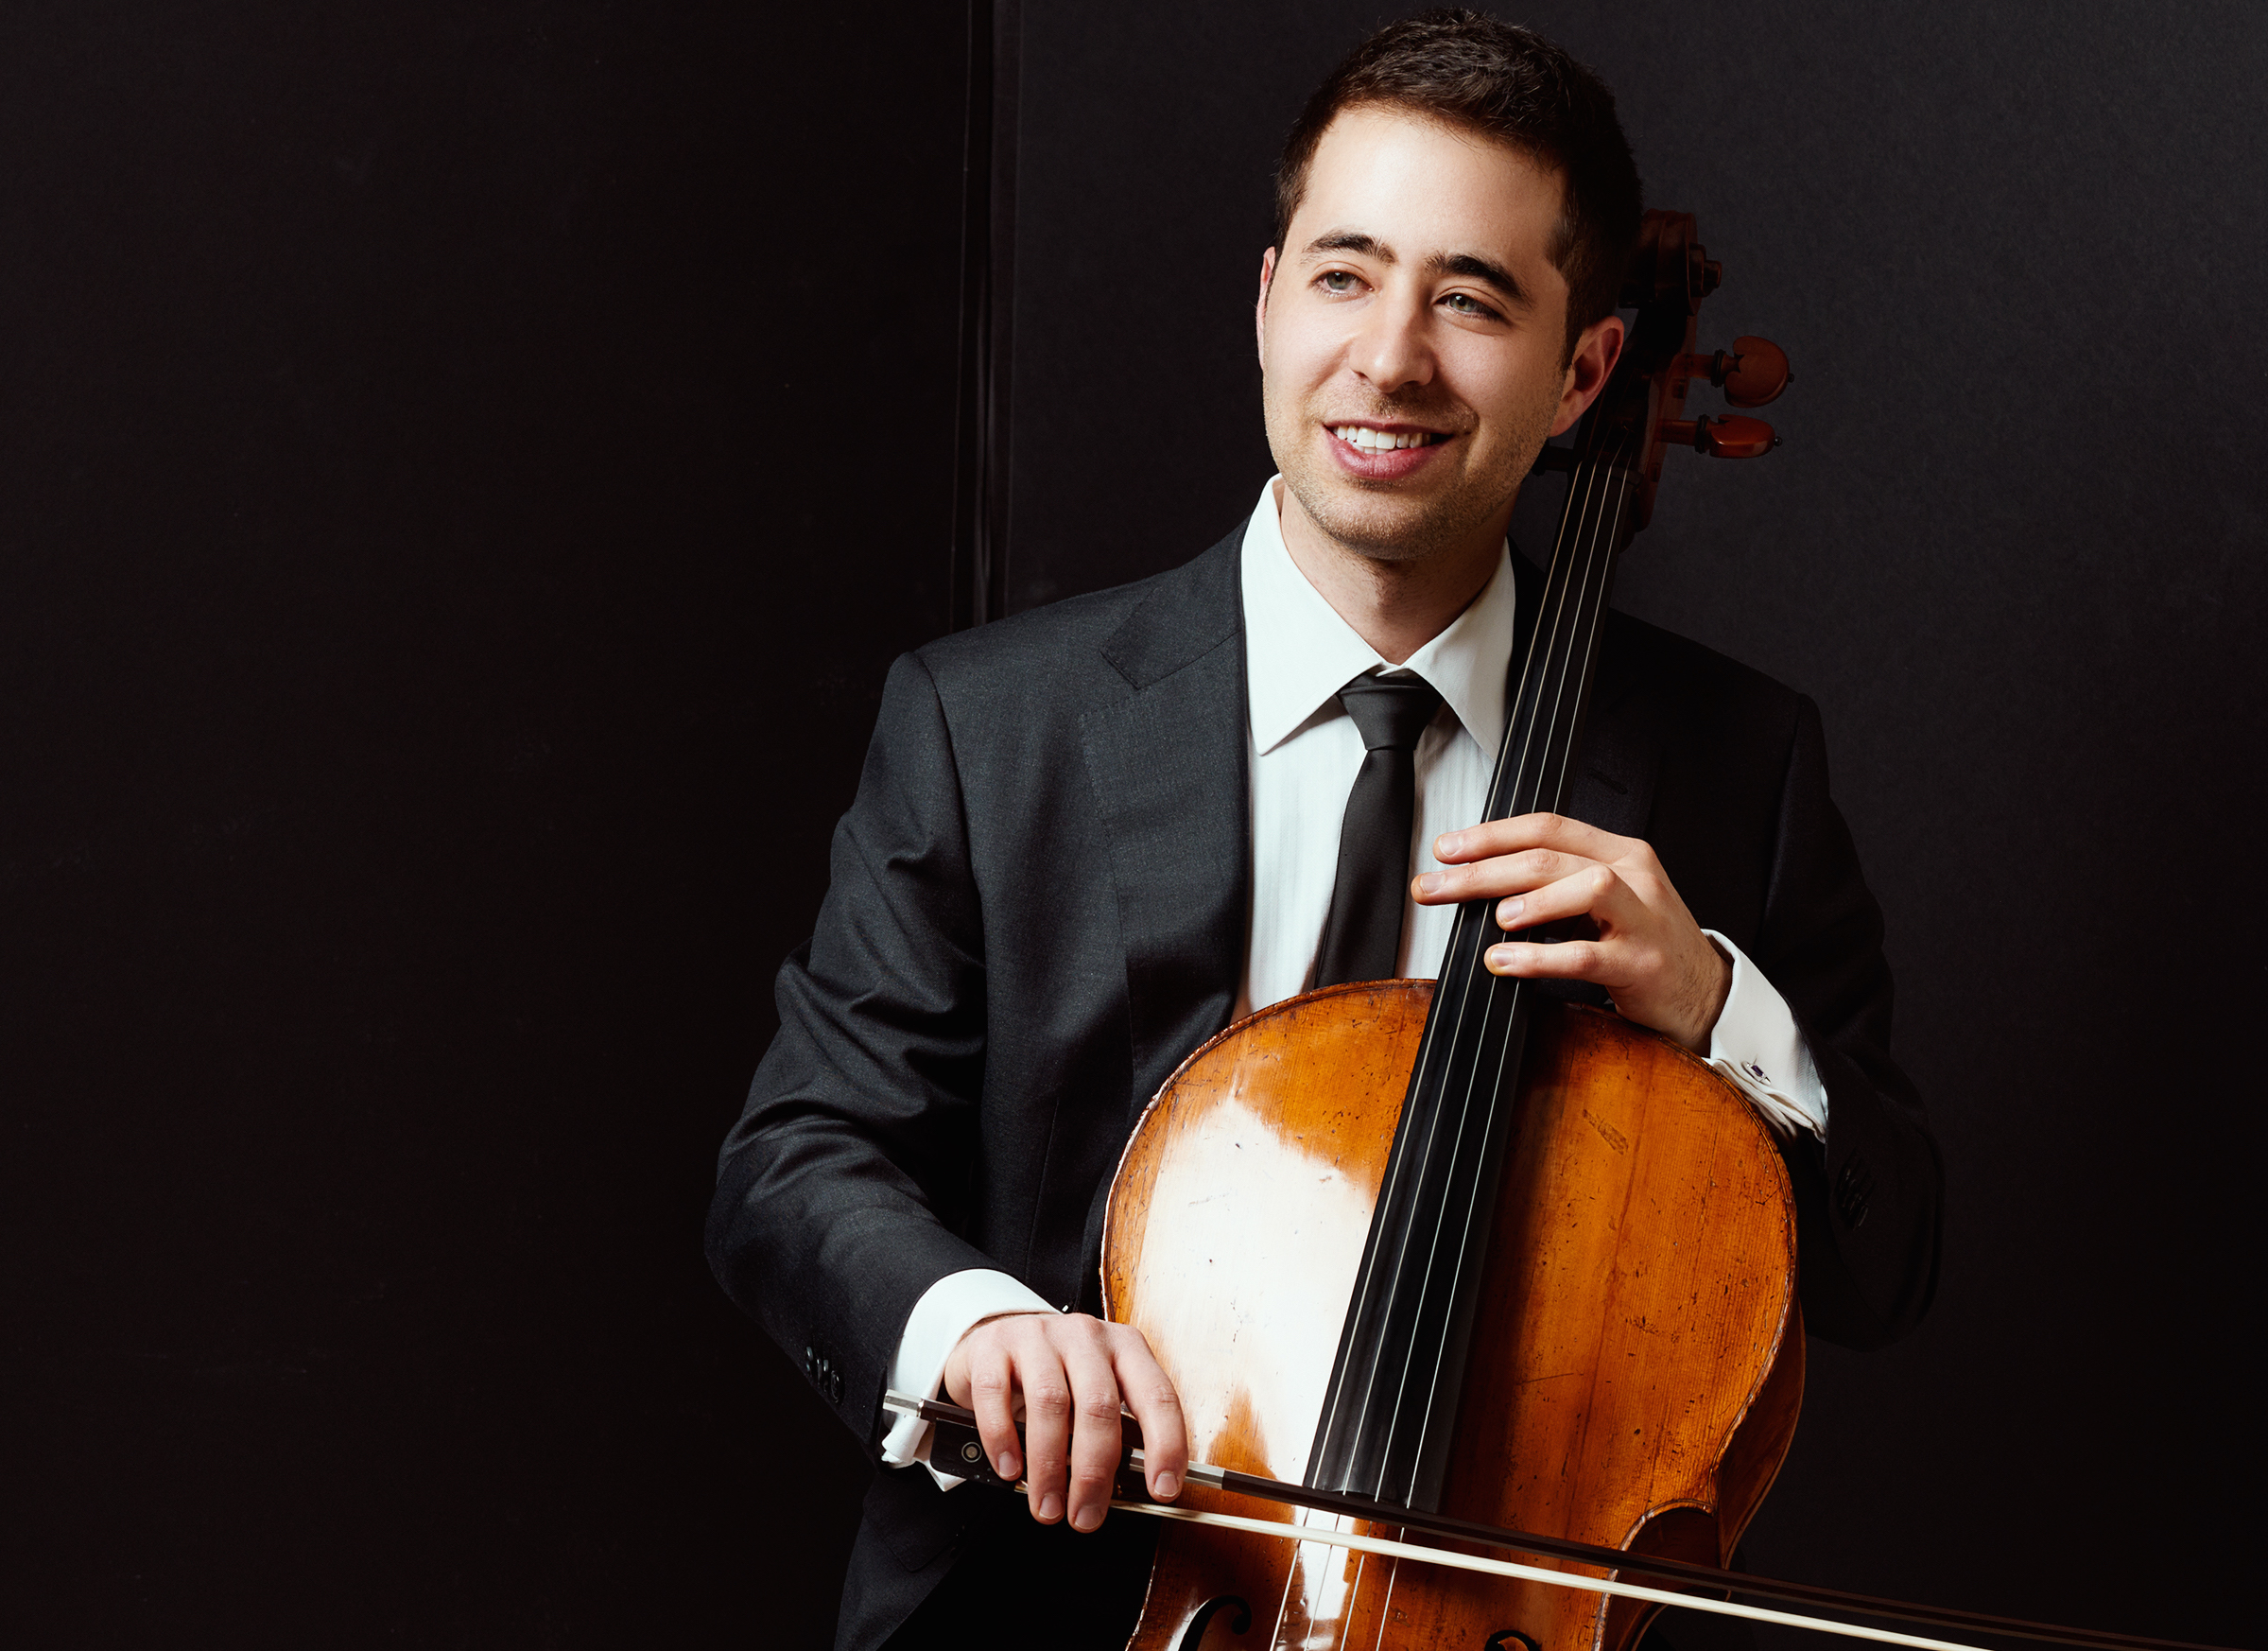 MATTHEW ZALKIND  | cello  Faculty, Lamont School of Music at the University of Denver; Winner, Washington International Competition